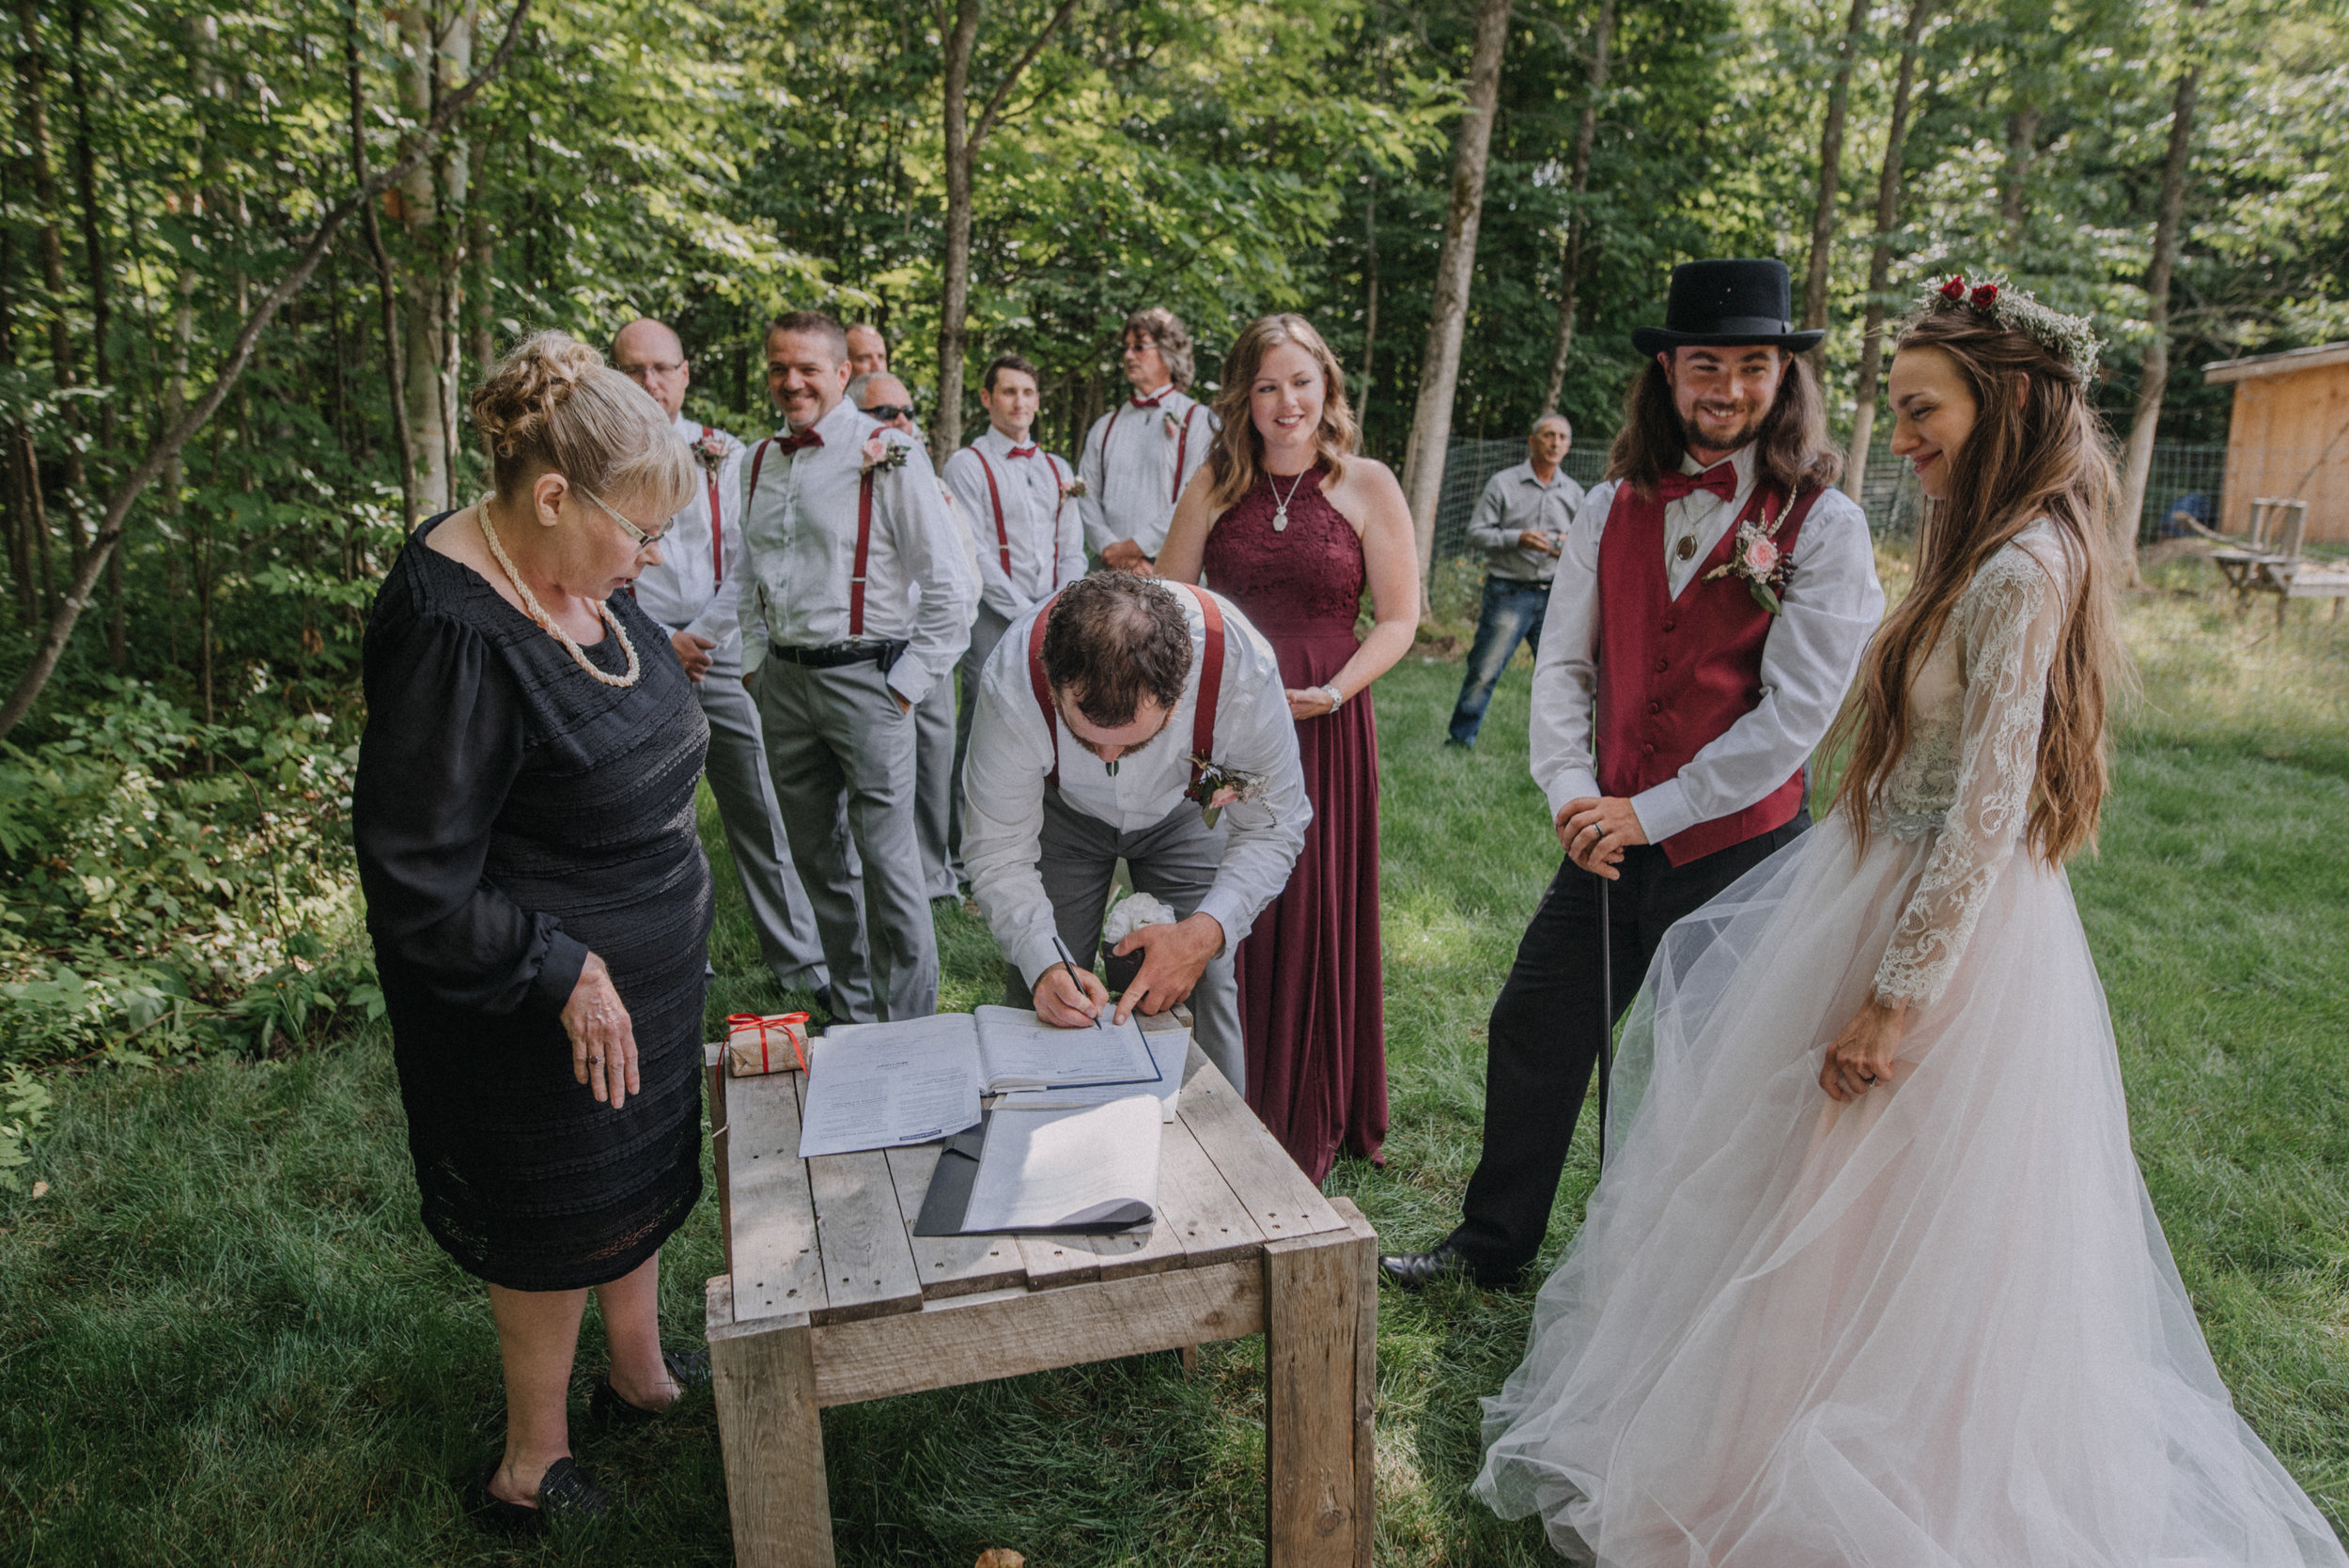 ottawa_wedding_photographer_gatineau_photographe_mariage_documentary_candid_photojournalist_natural_raw_boho_wedding_backyard (22).JPG